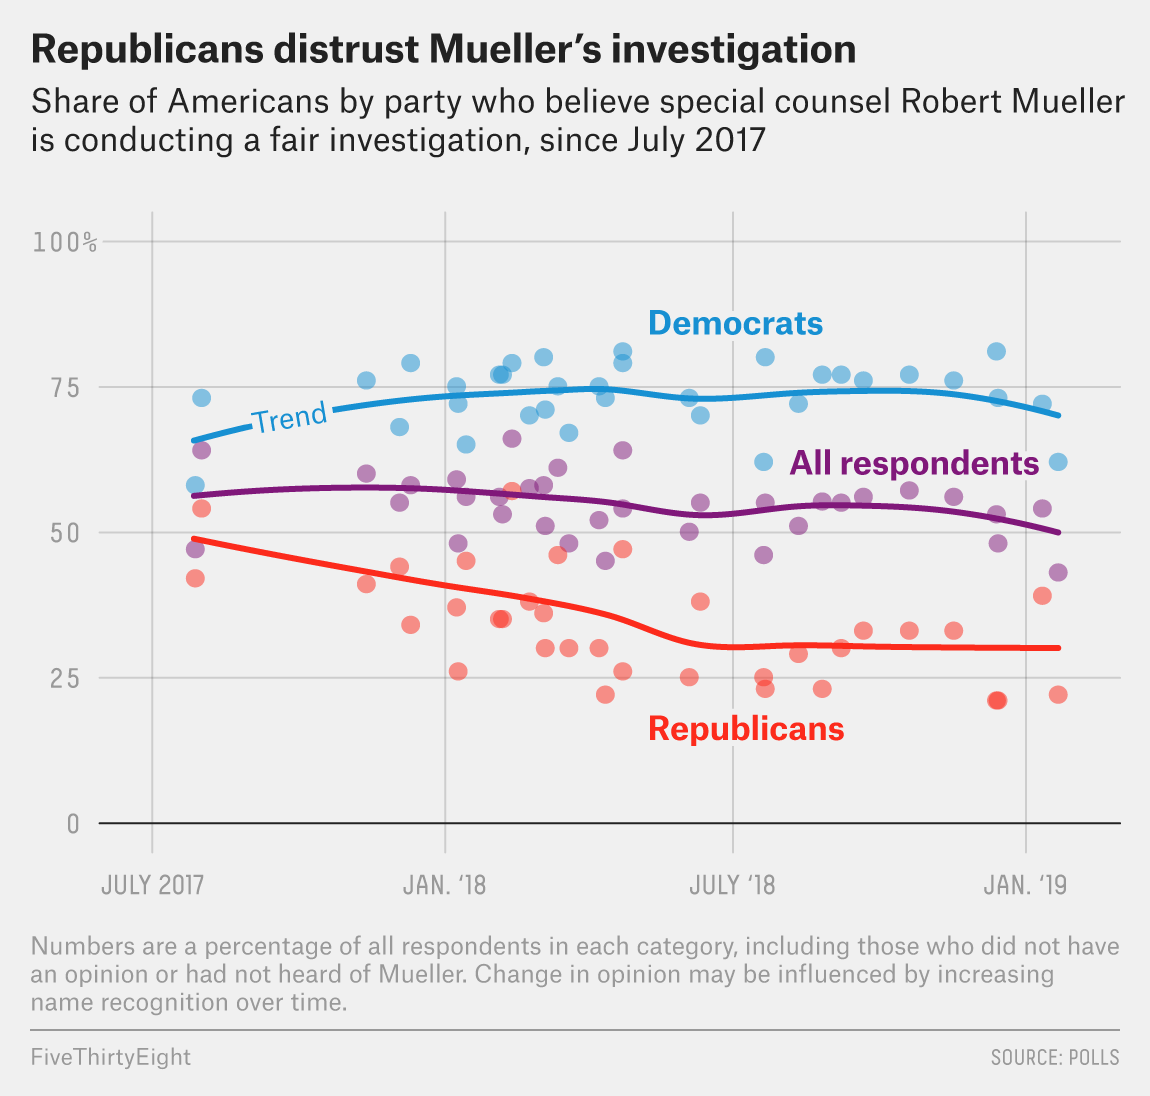 Public Opinion Of The Mueller Investigation Has Become More Partisan